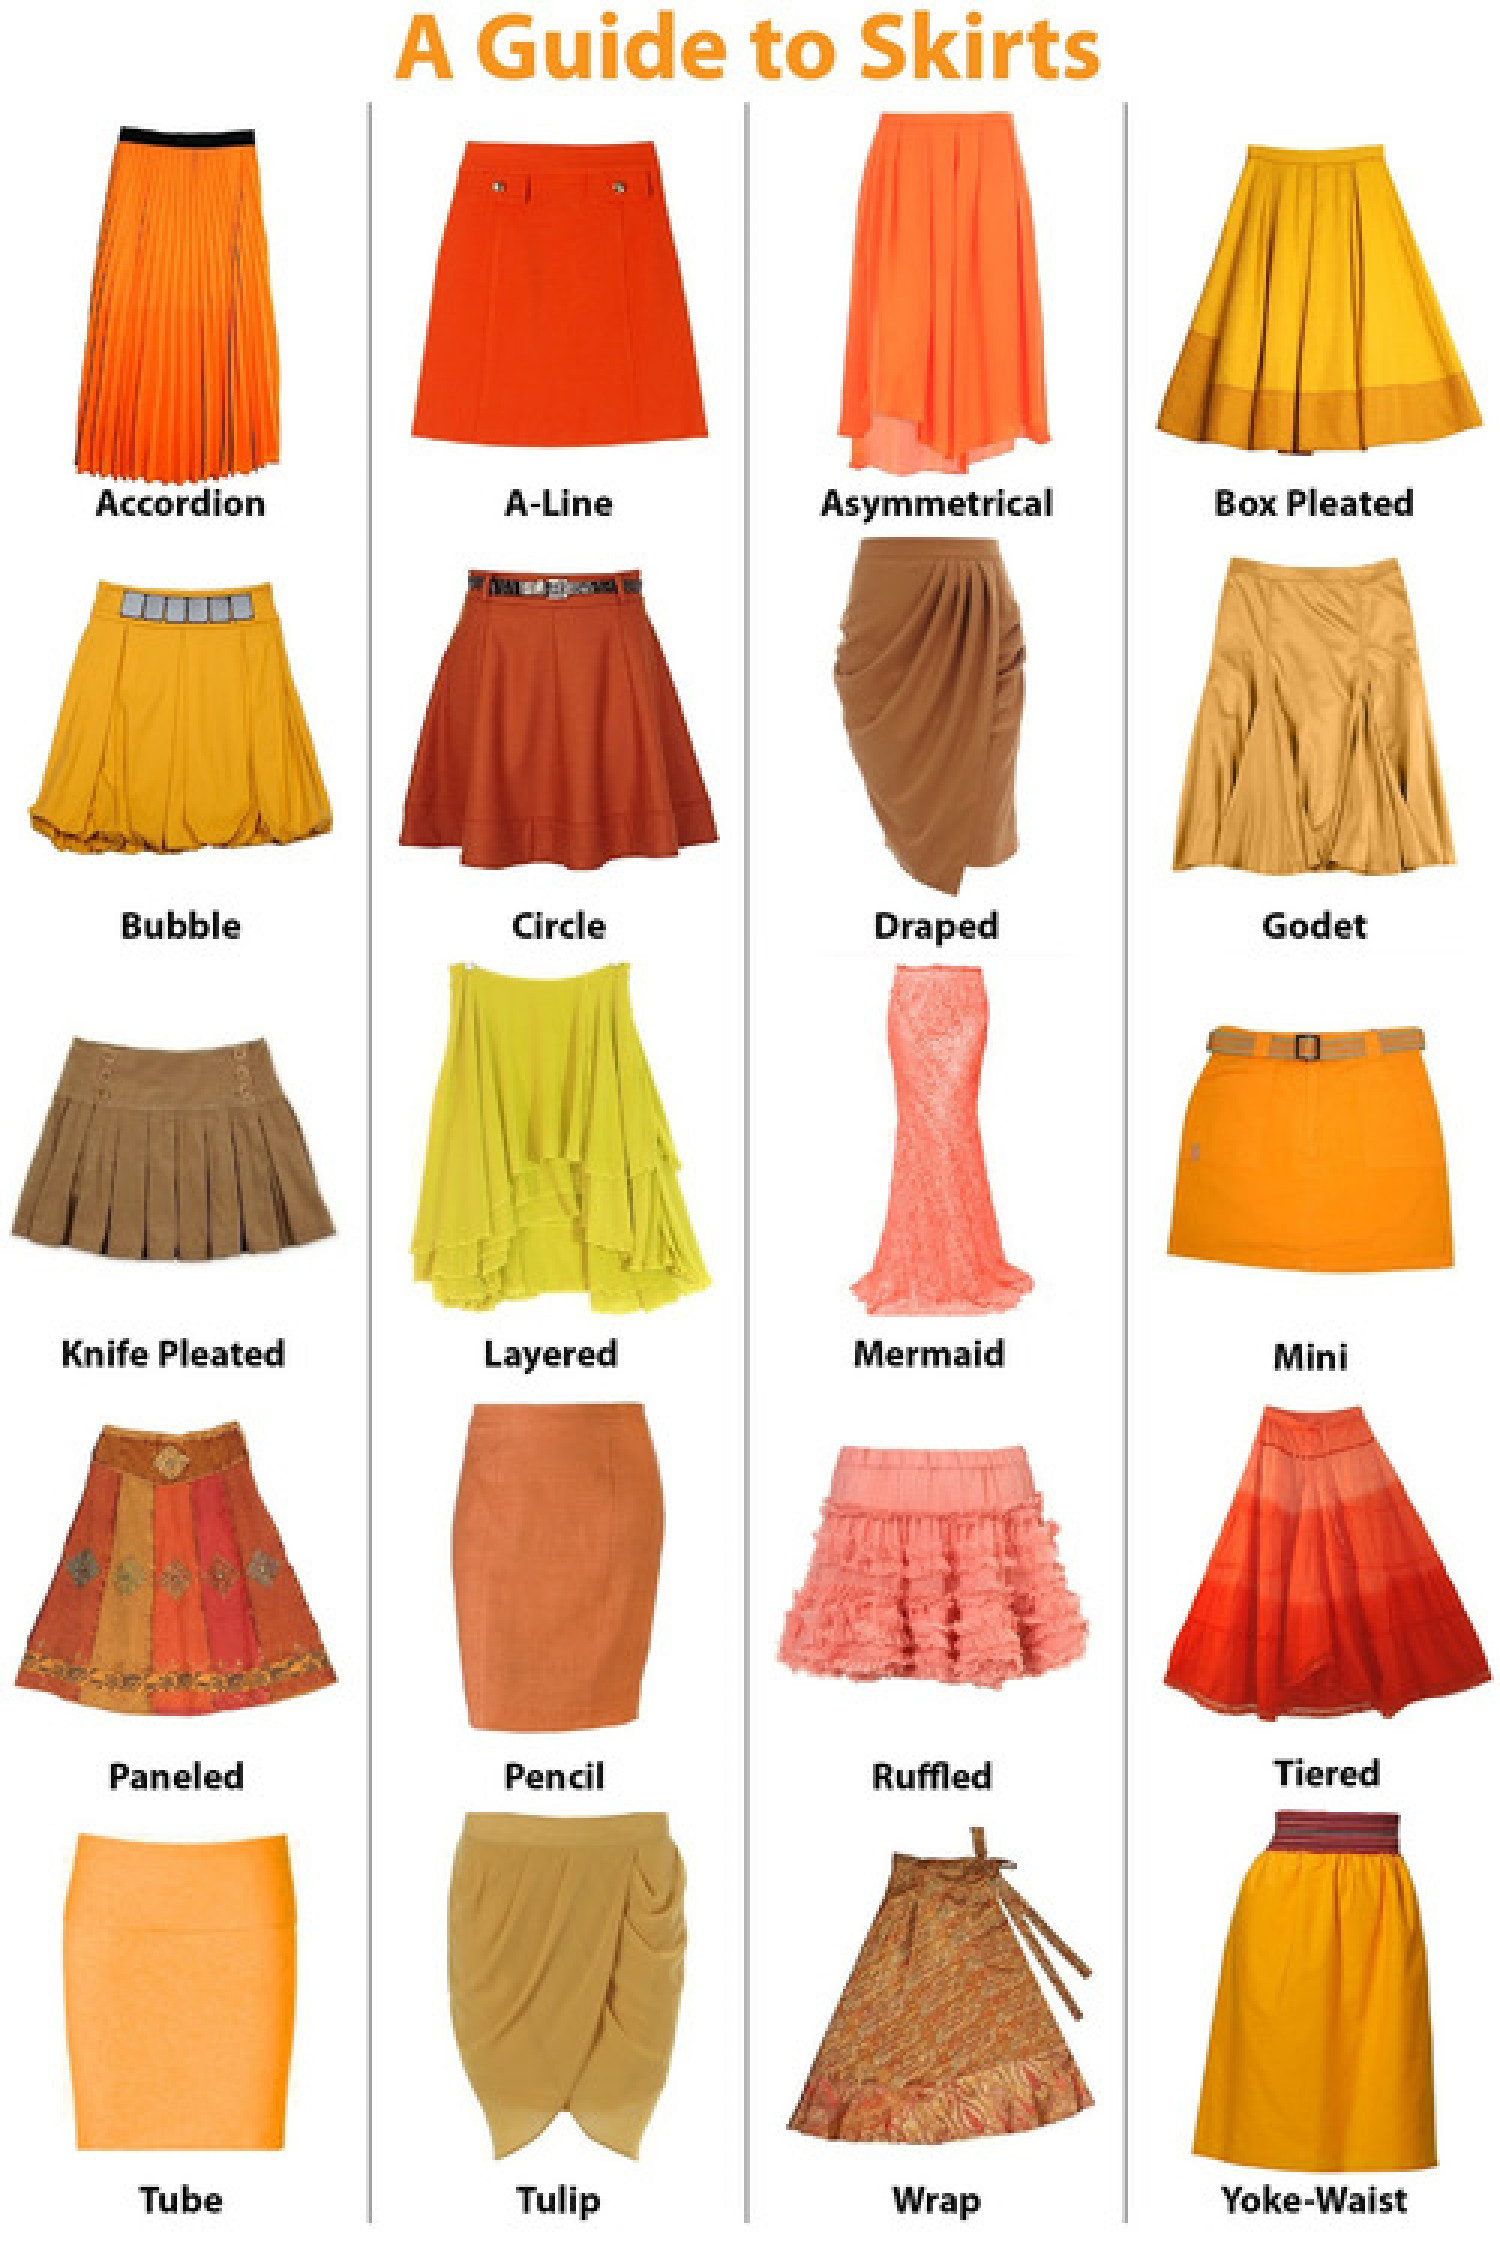 A Simple Guide to Skirts Infographic